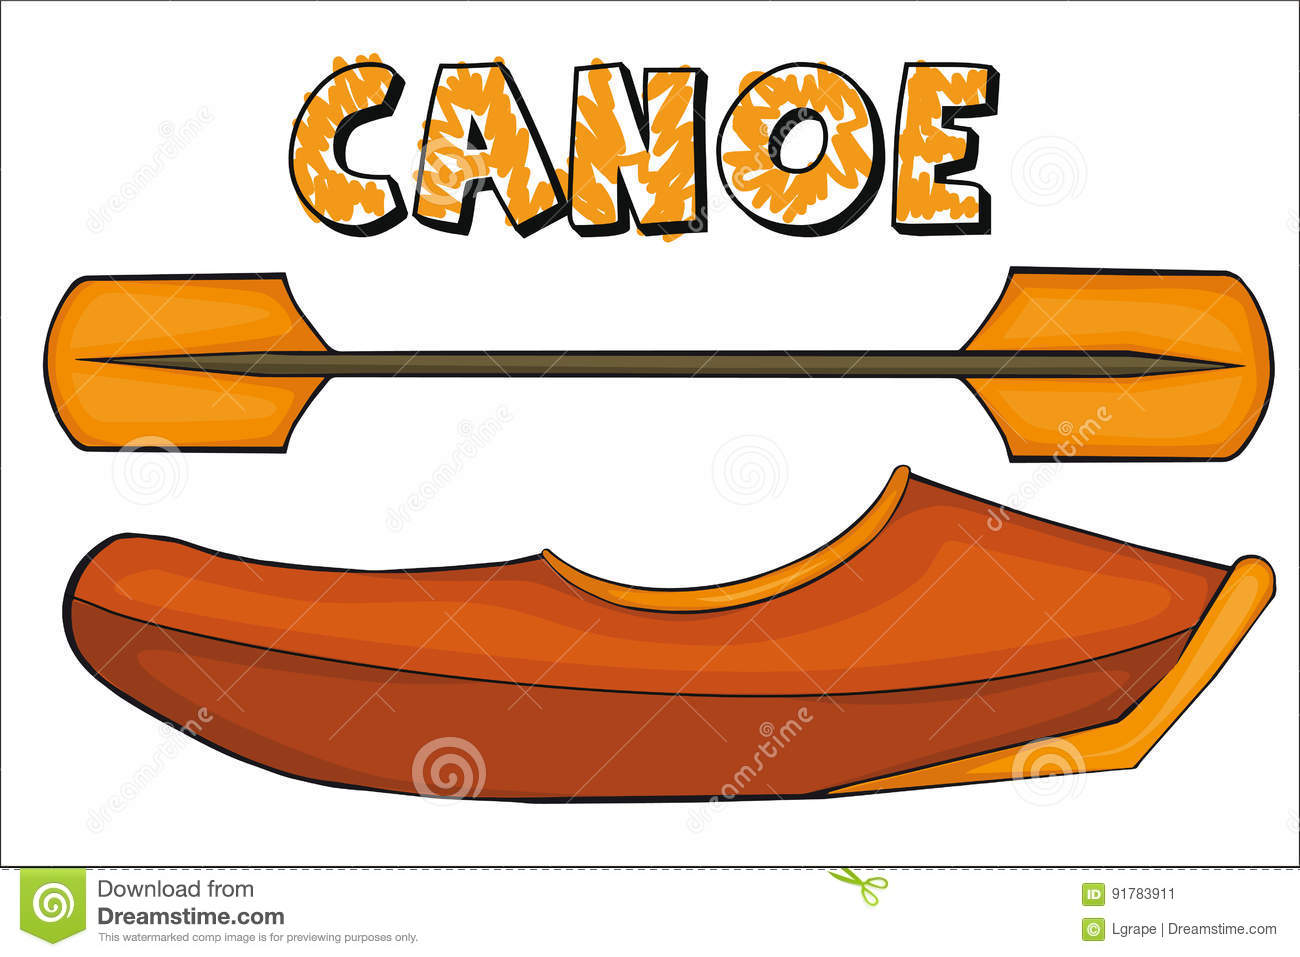 Canoe cartoons illustrations vector stock images